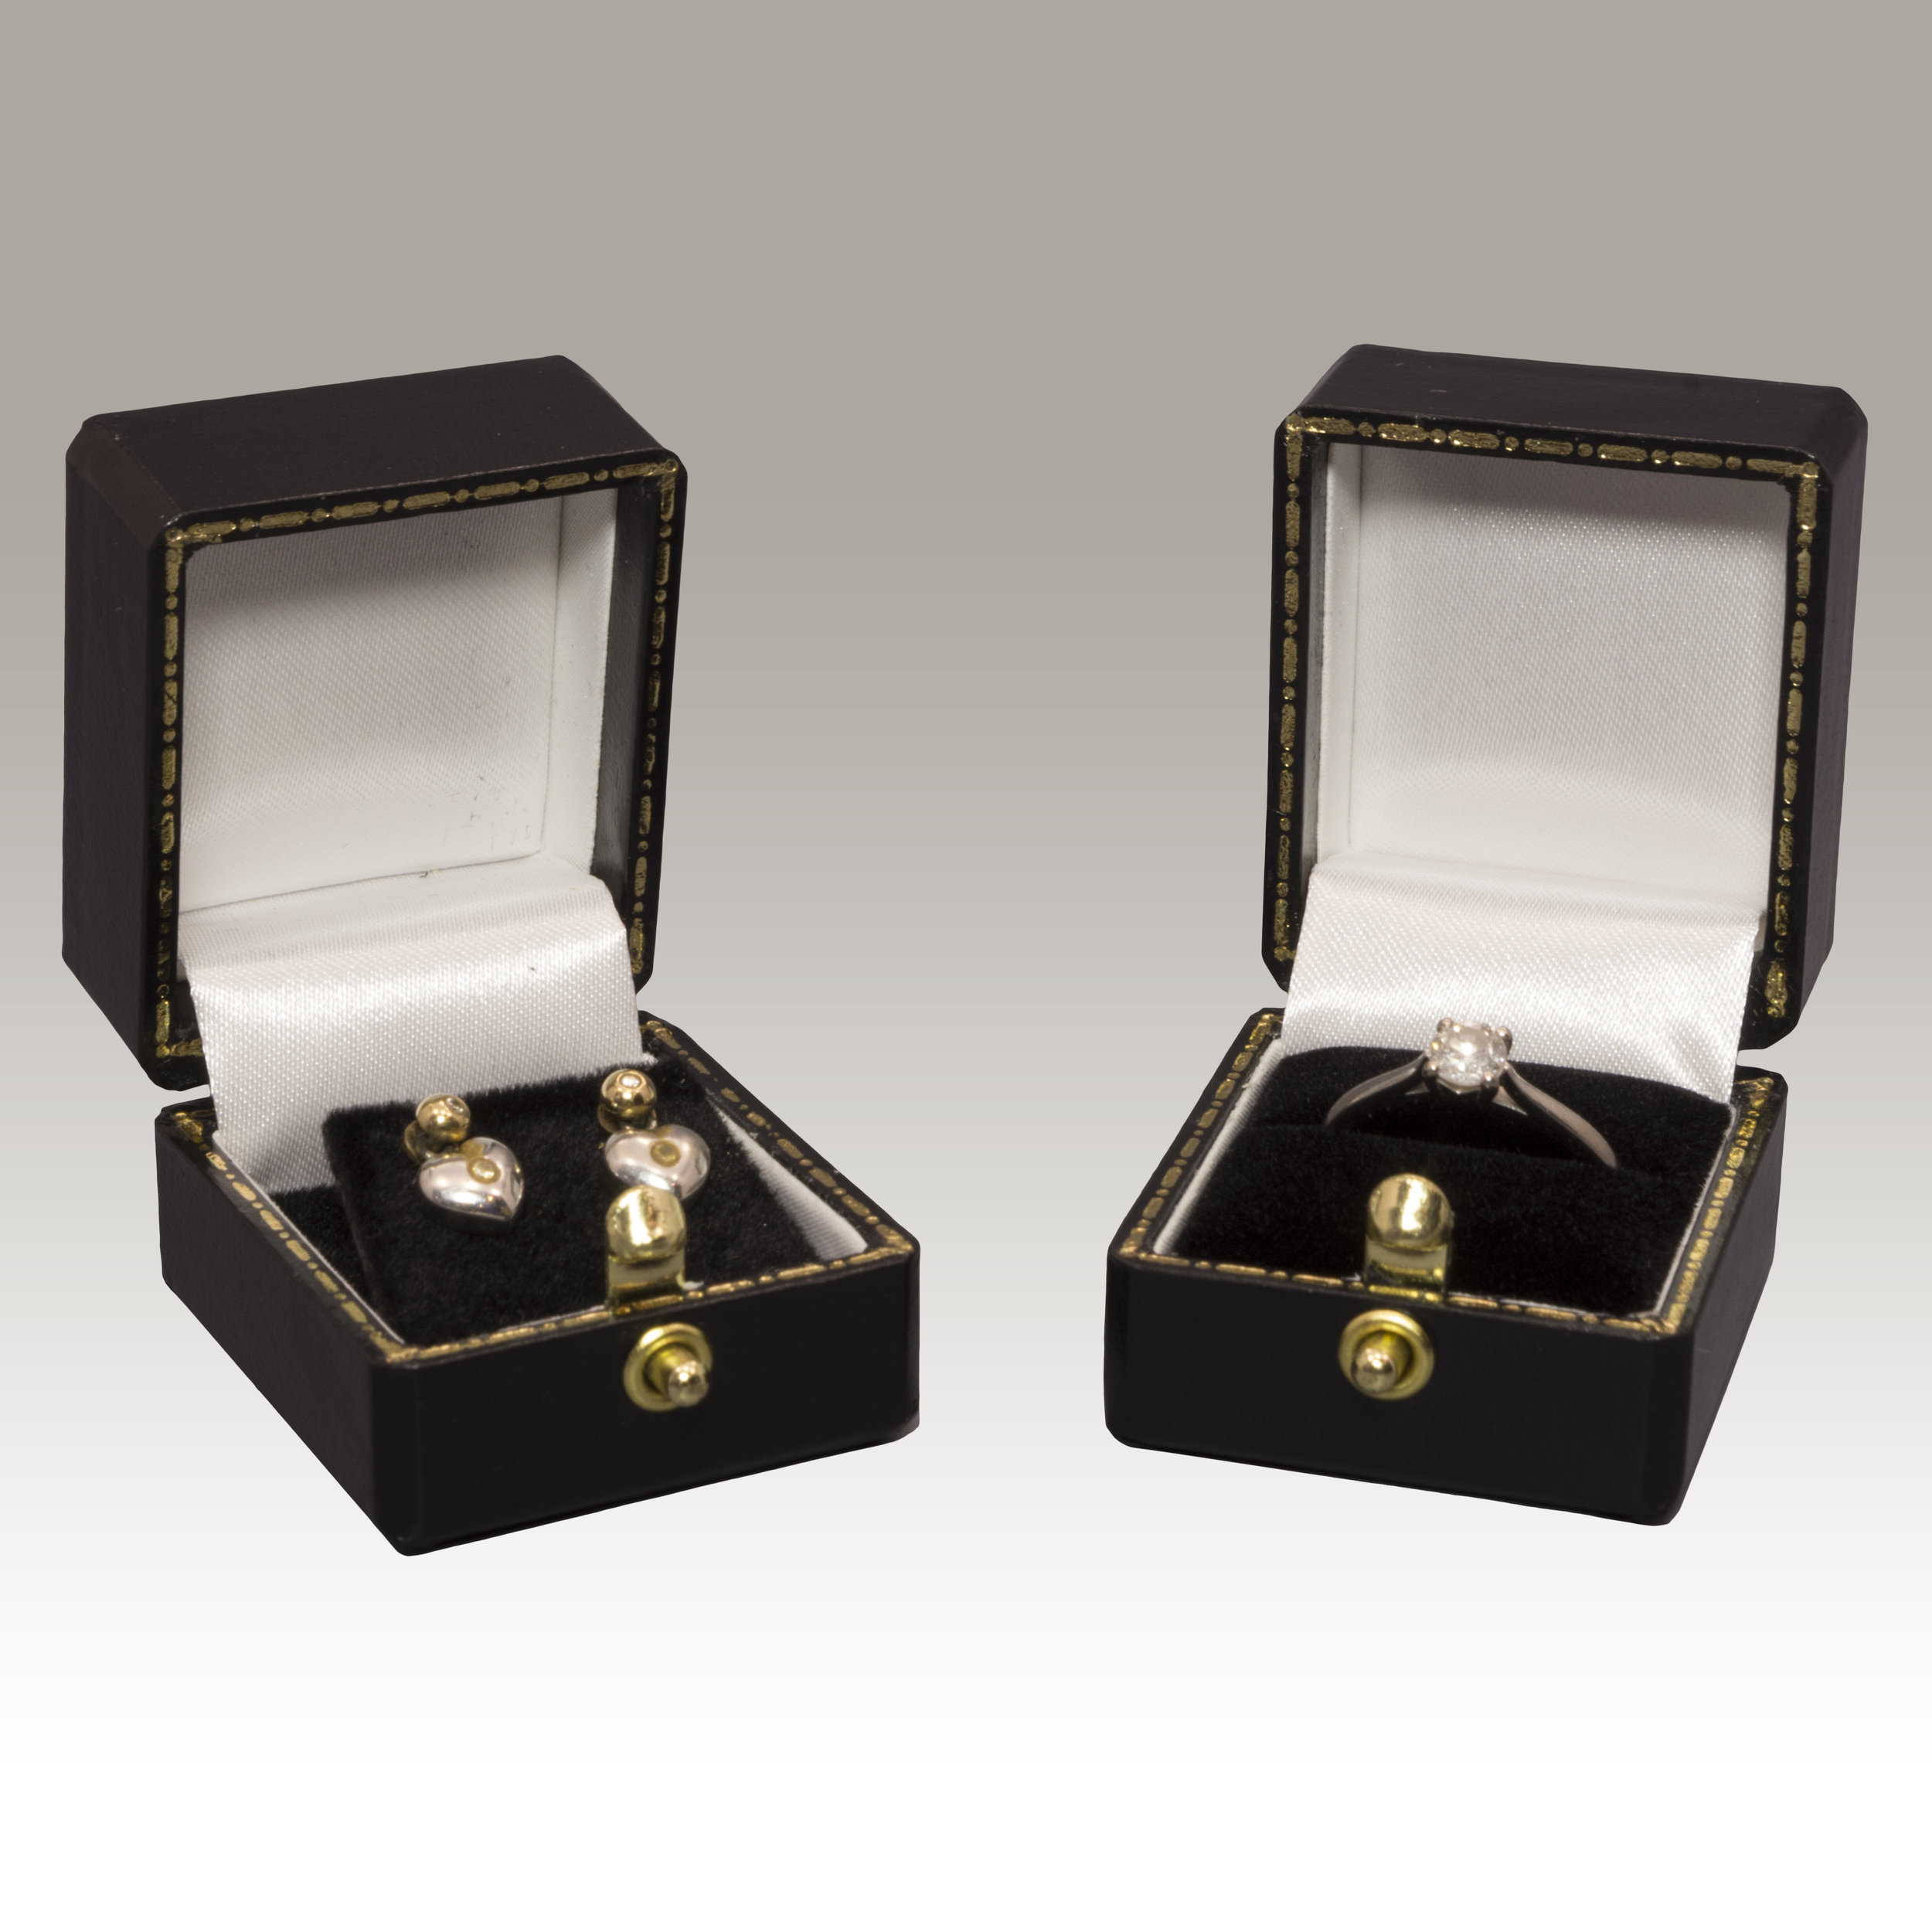 leather earing and ring boxes.jpg